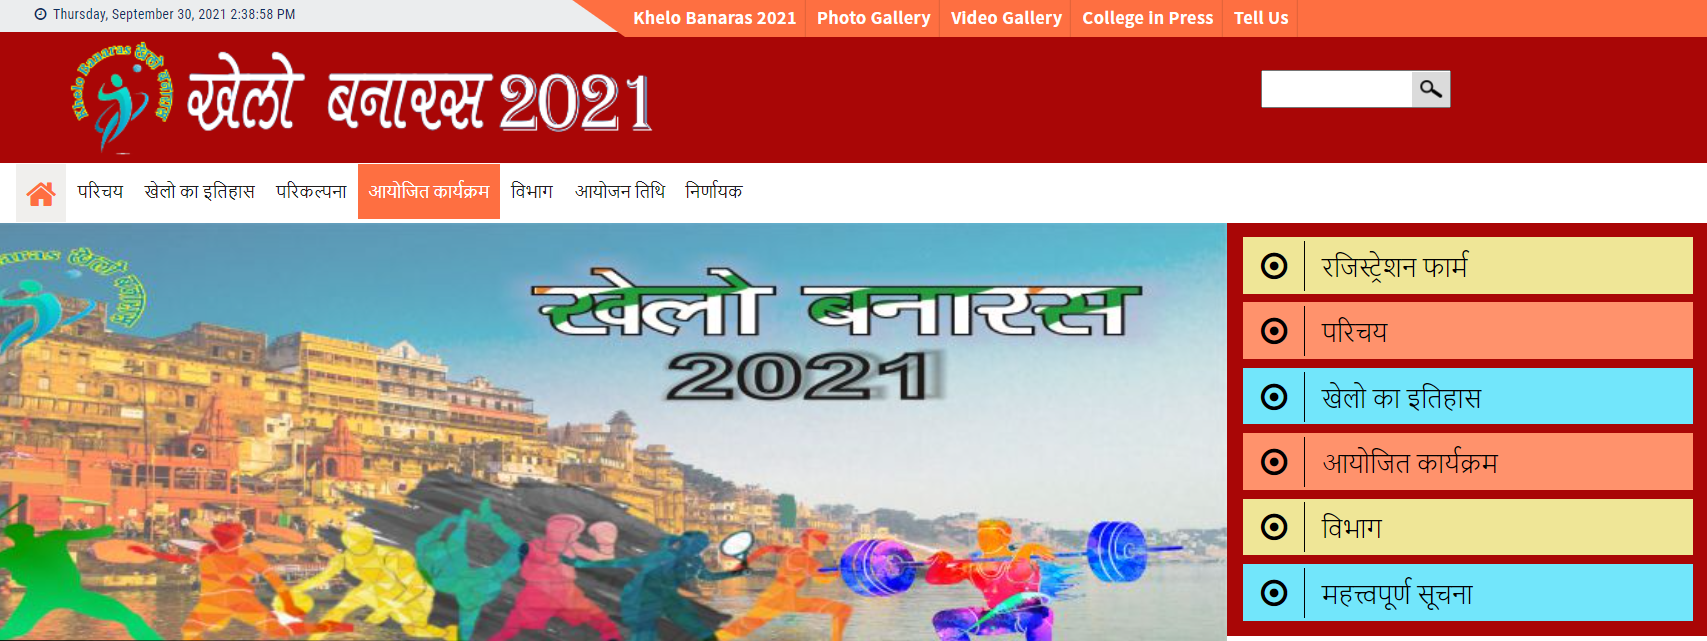 How to Apply Online for Khelo Banaras Programme